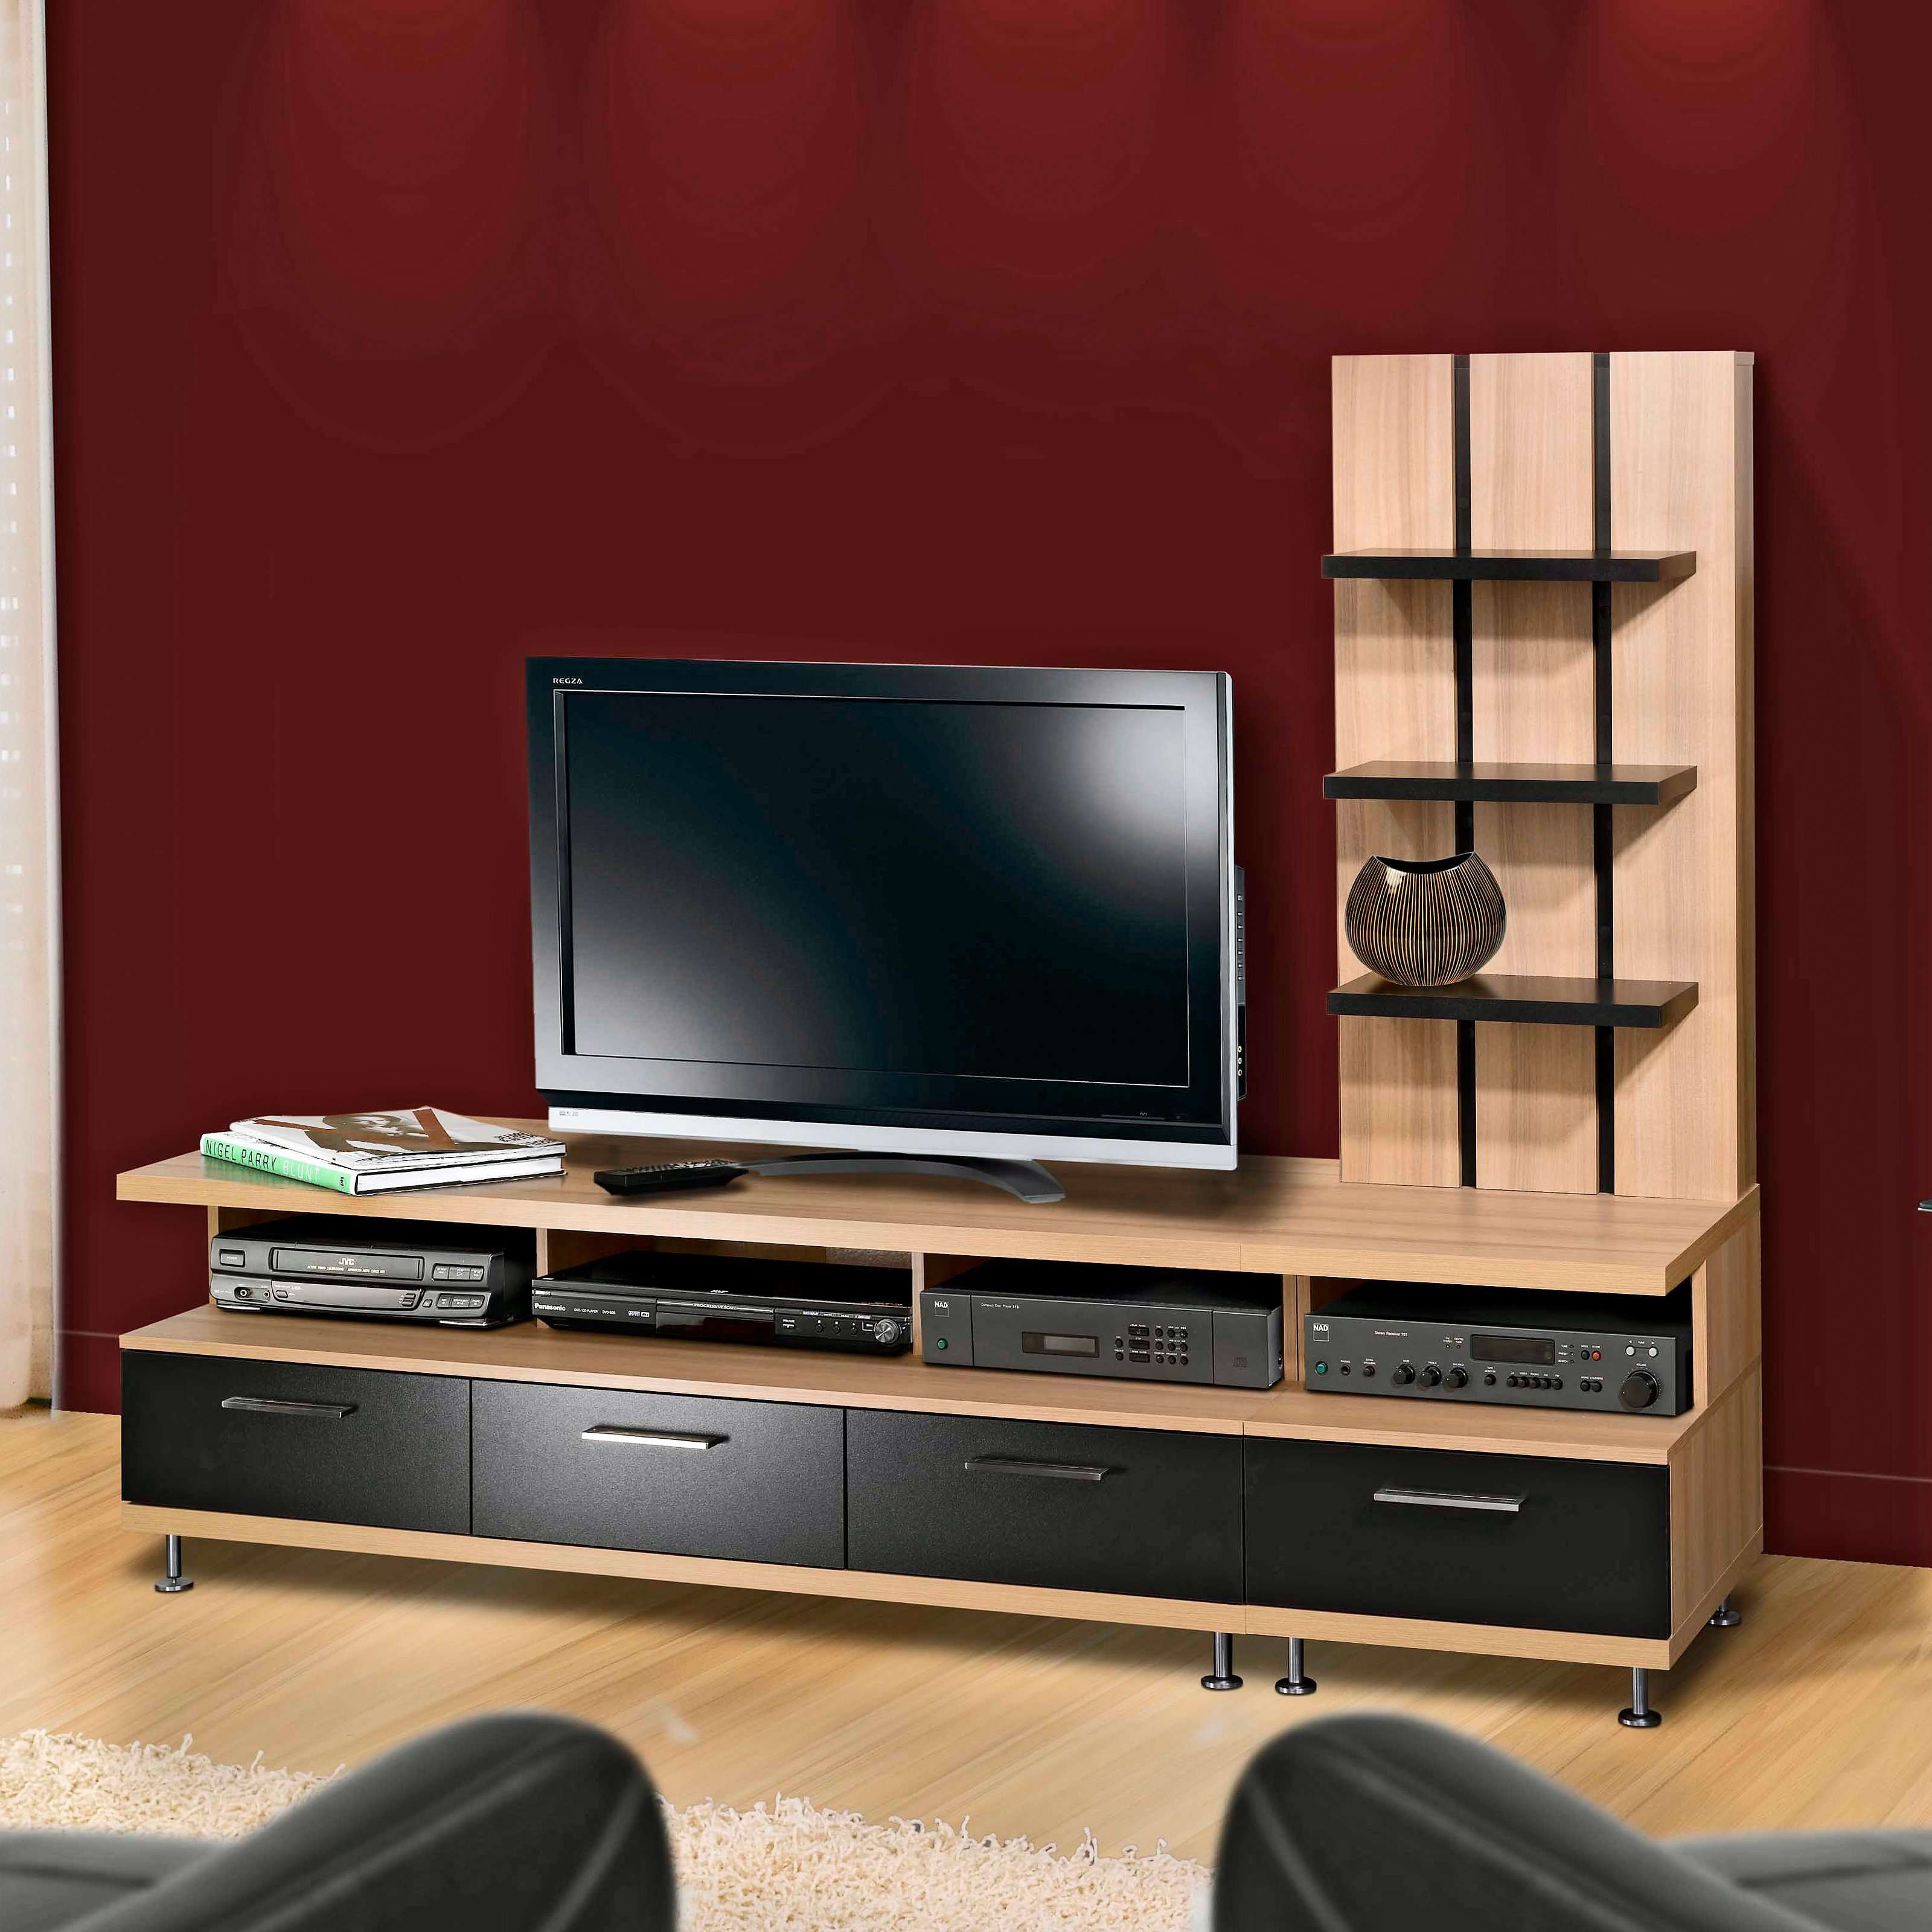 Media Stands For Flat Screen Tvs Tv Wall Units Screens Elegant And With Regard To Contemporary Tv Stands For Flat Screens (View 9 of 15)